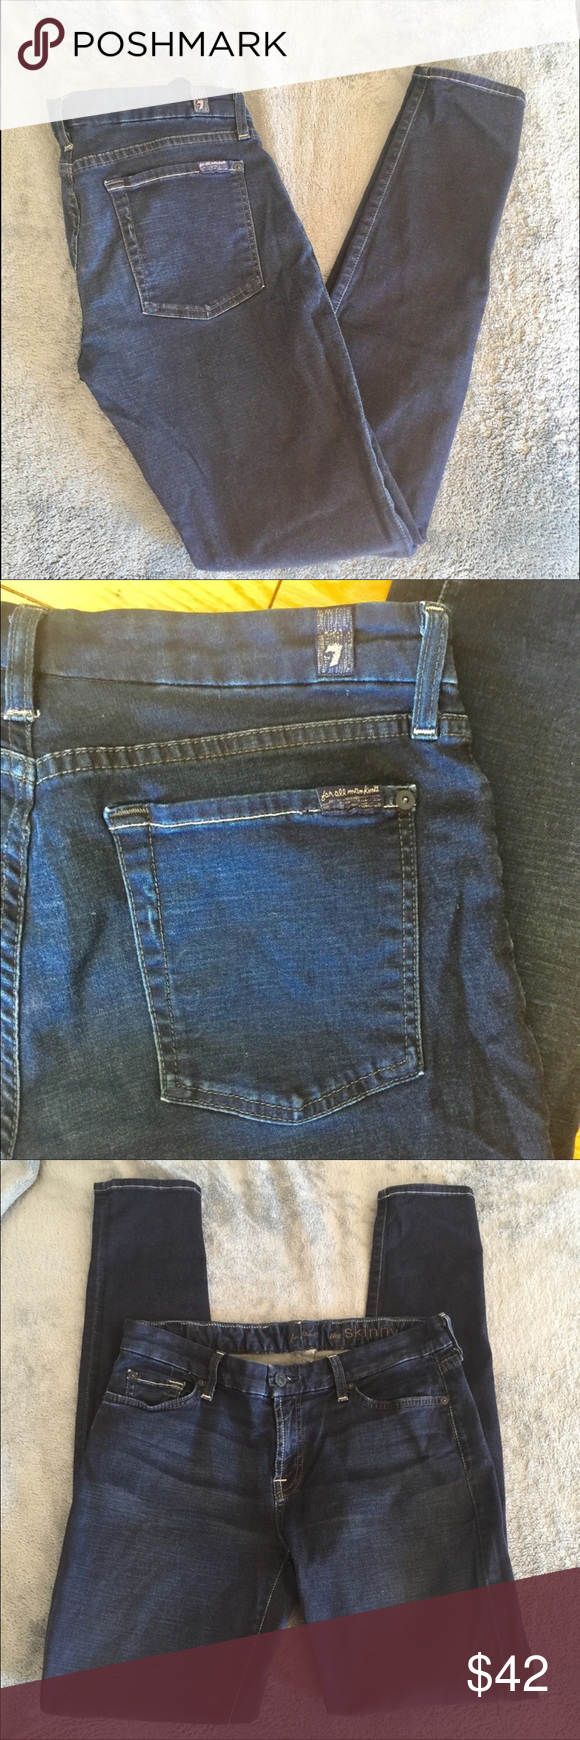 """7 for All Mankind The Skinny dark wash medium rise 7 for All Mankind The Skinny dark wash medium rise jeans. Dark wash soft cotton and stretch skinny jeans. Mid rise. Made in the USA.  EUC size 29.  Approximate measurements 29"""" waist, 31"""" inseam, 39"""" length, 5"""" leg opening. 8"""" front rise. 7 For All Mankind Jeans Skinny"""